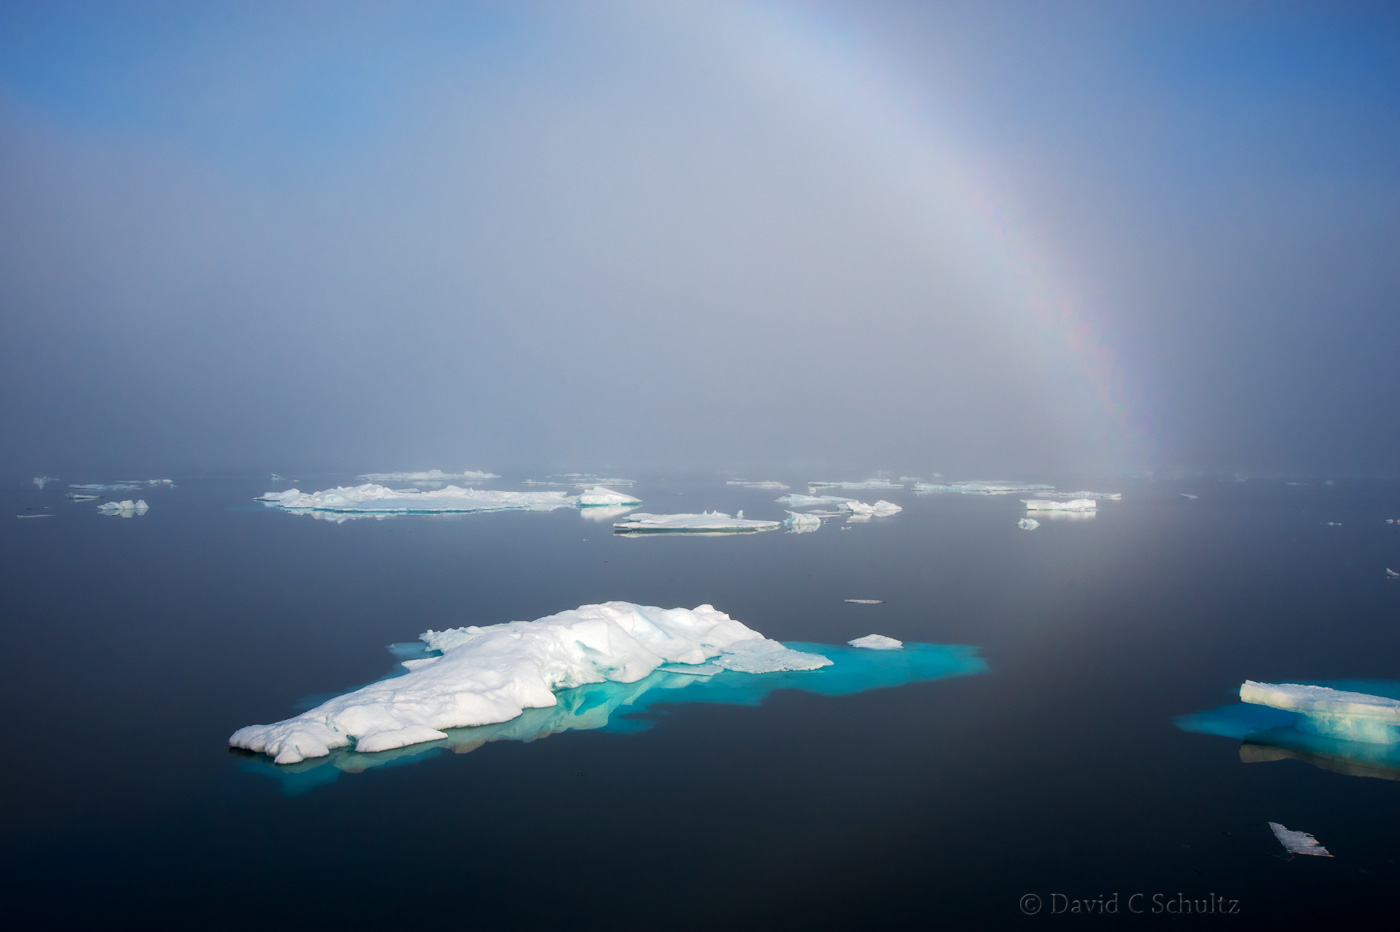 Icebergs in Baffin Bay - Image #167-0626